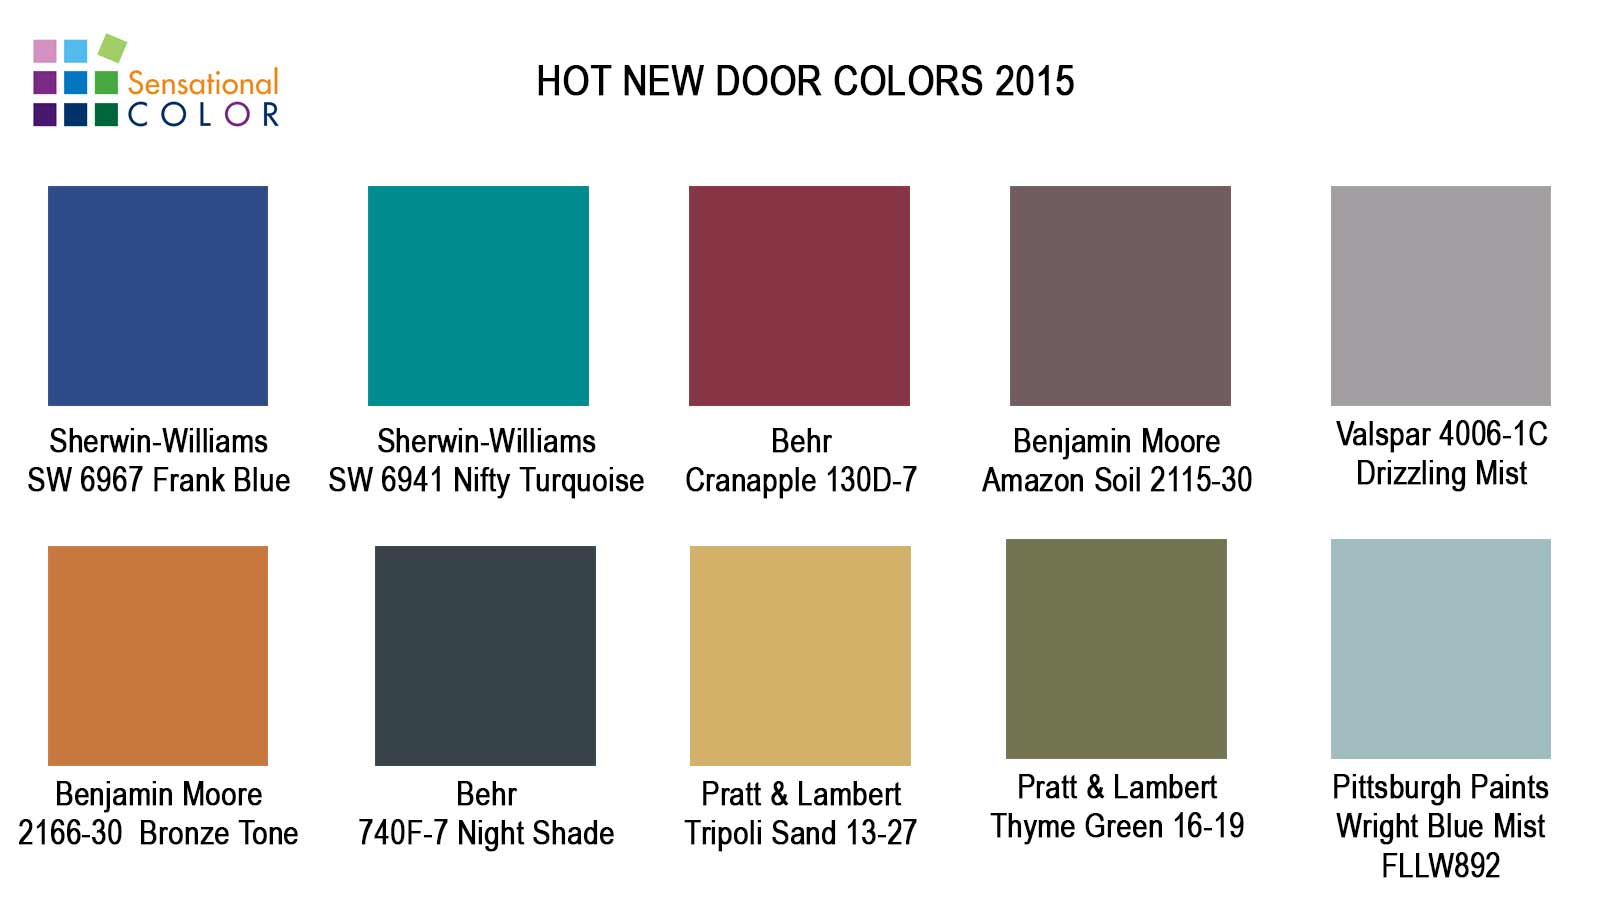 See How These Colors Look On A Door